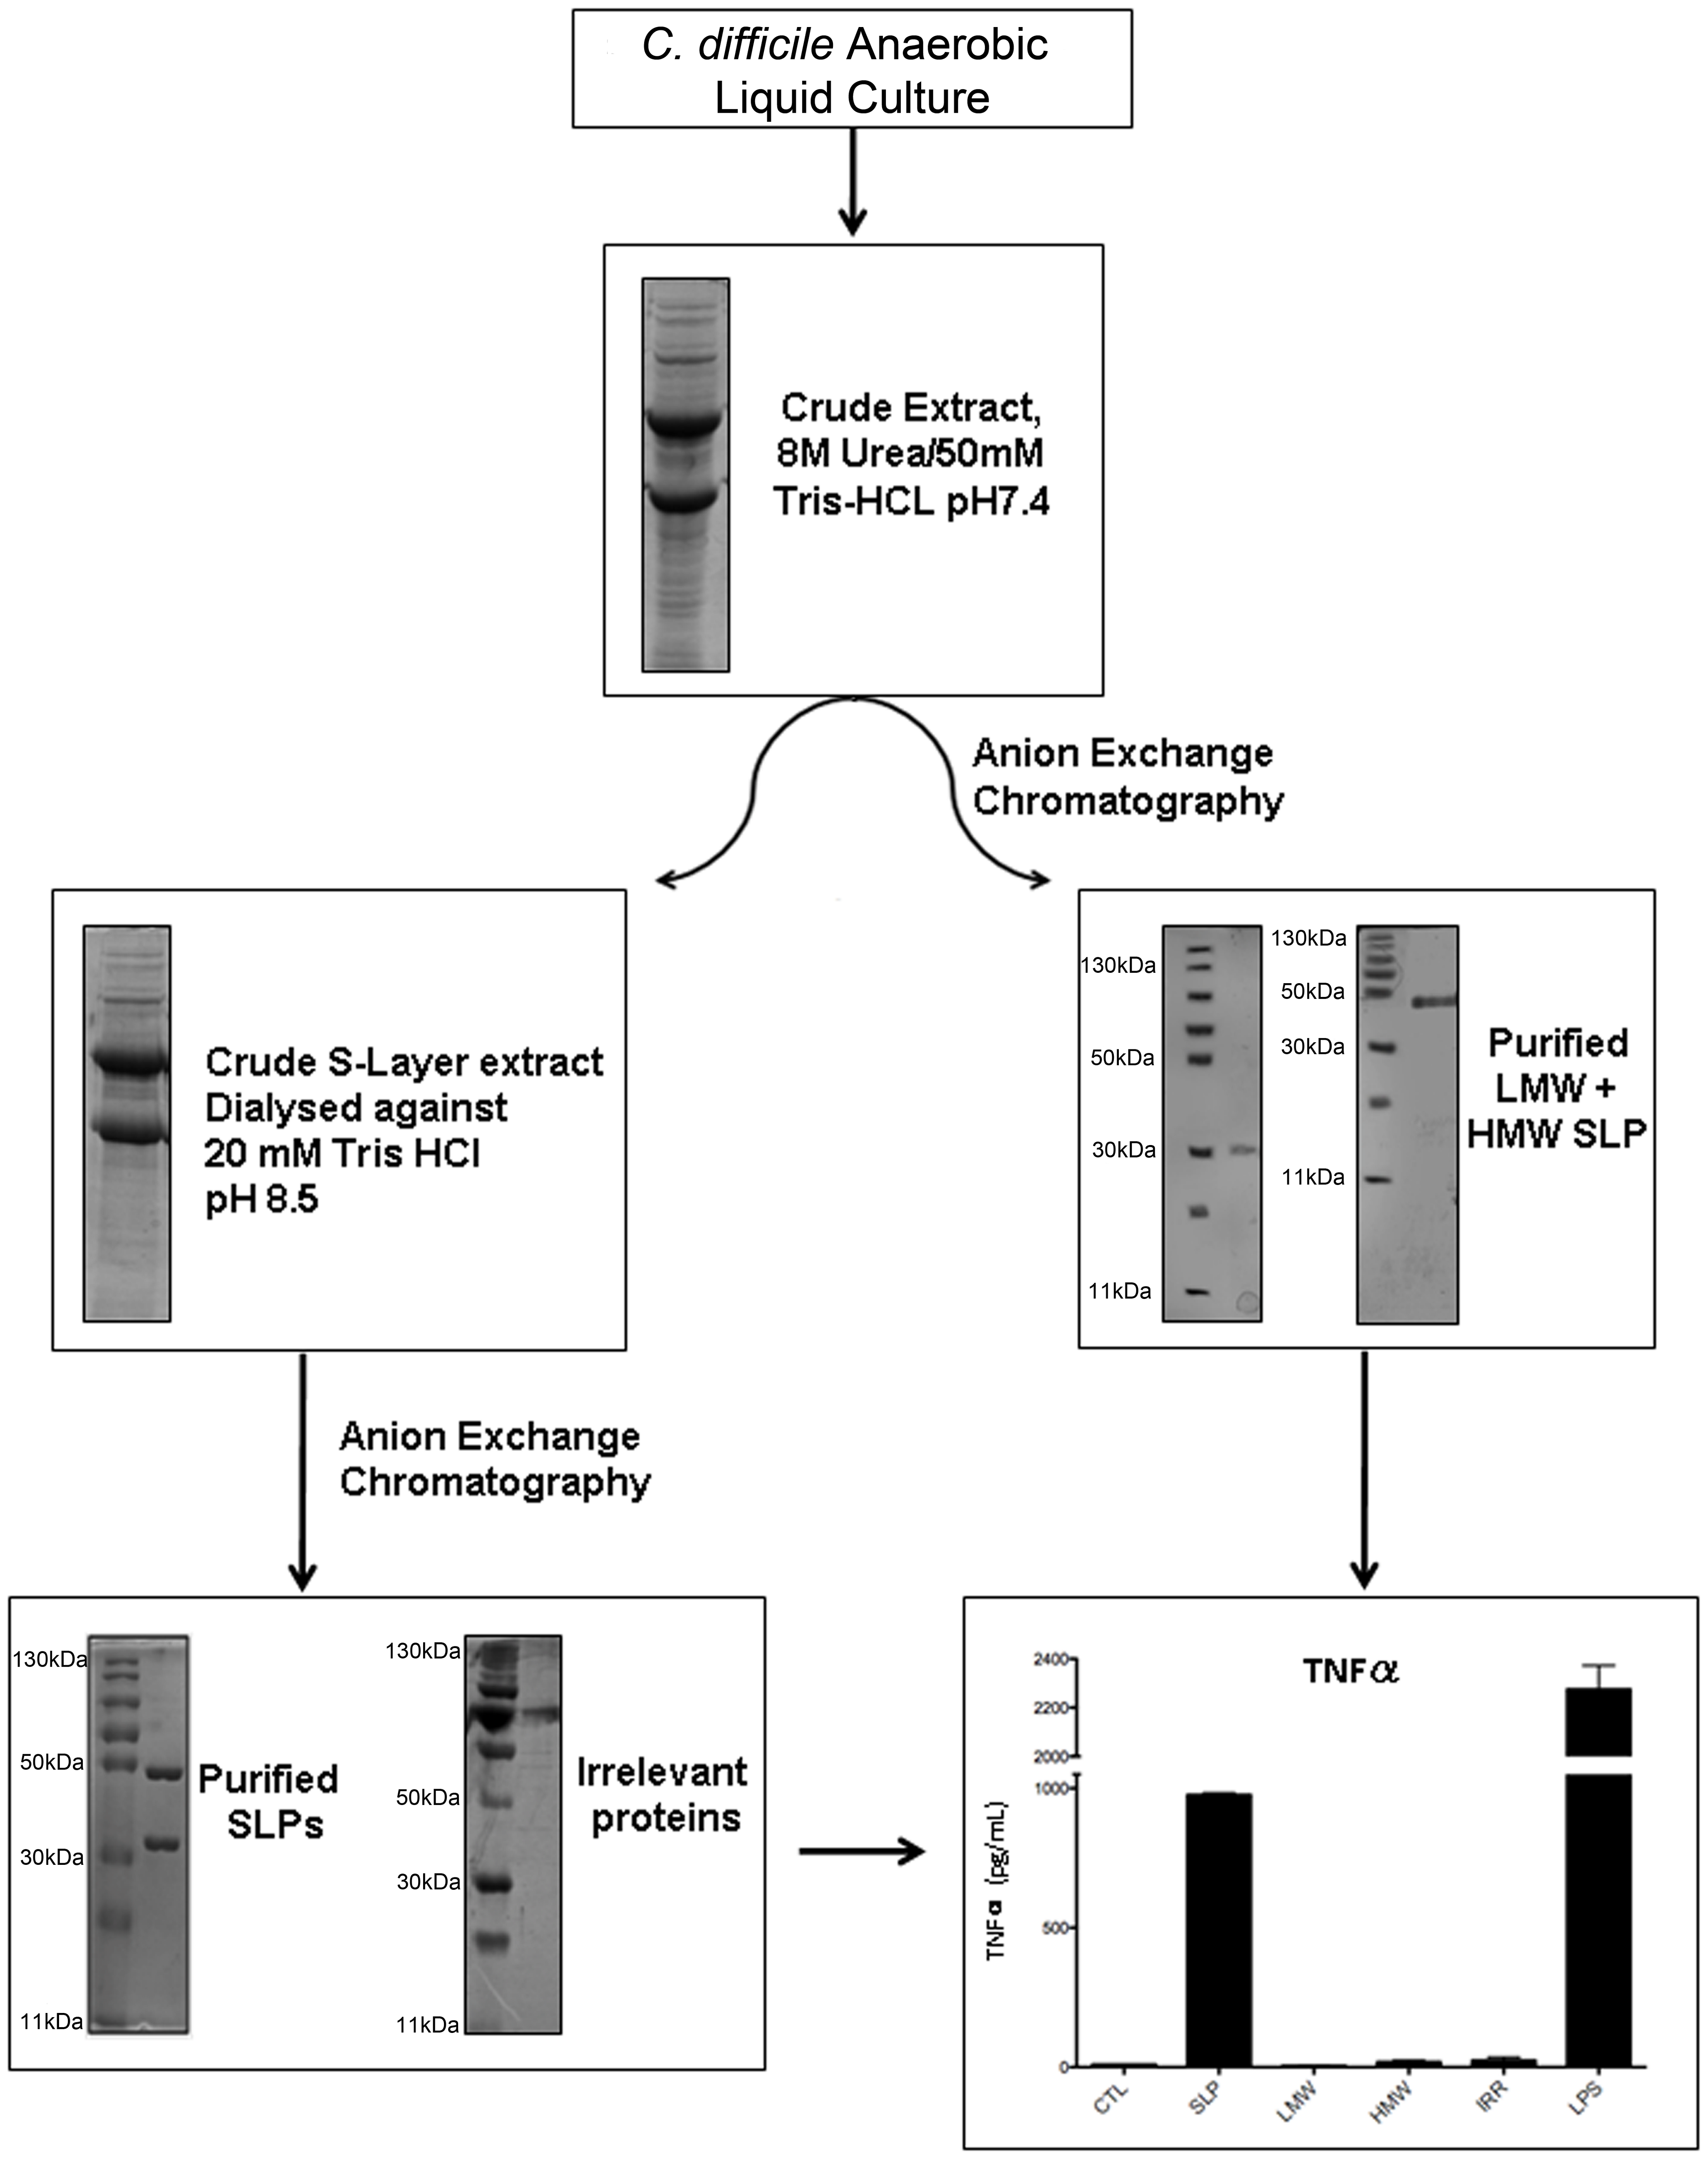 Purification and characterisation of SLPs isolated from <i>C. difficile</i>.